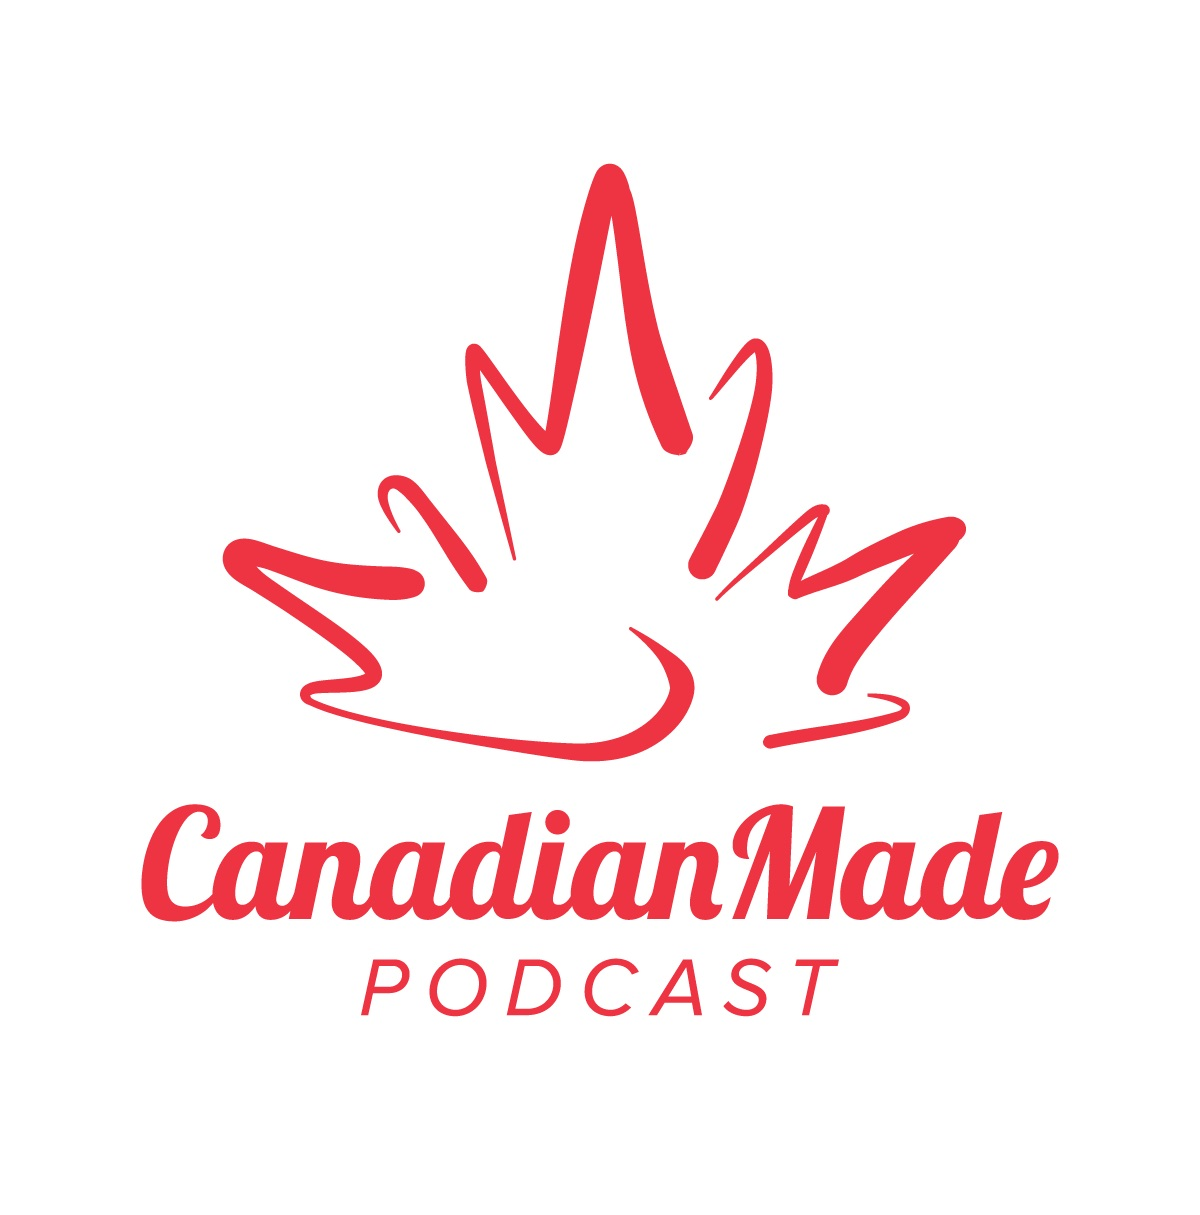 Canadian Made Audio Productions Podcast logo